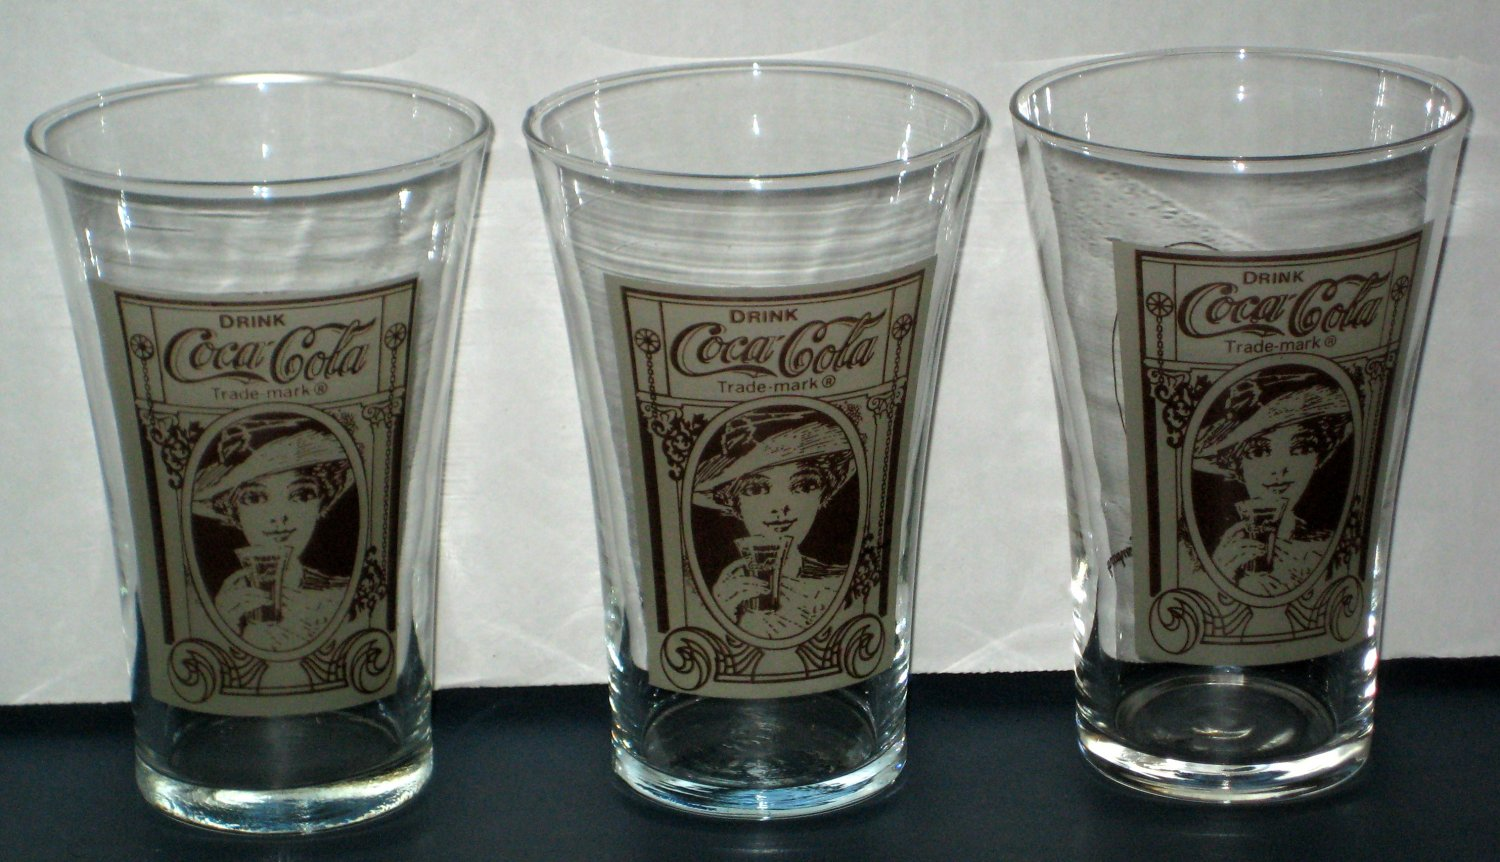 Drinking Glasses Designs Sold Coca Cola Flair Design Glass Lot Of 3 Coke Drinking